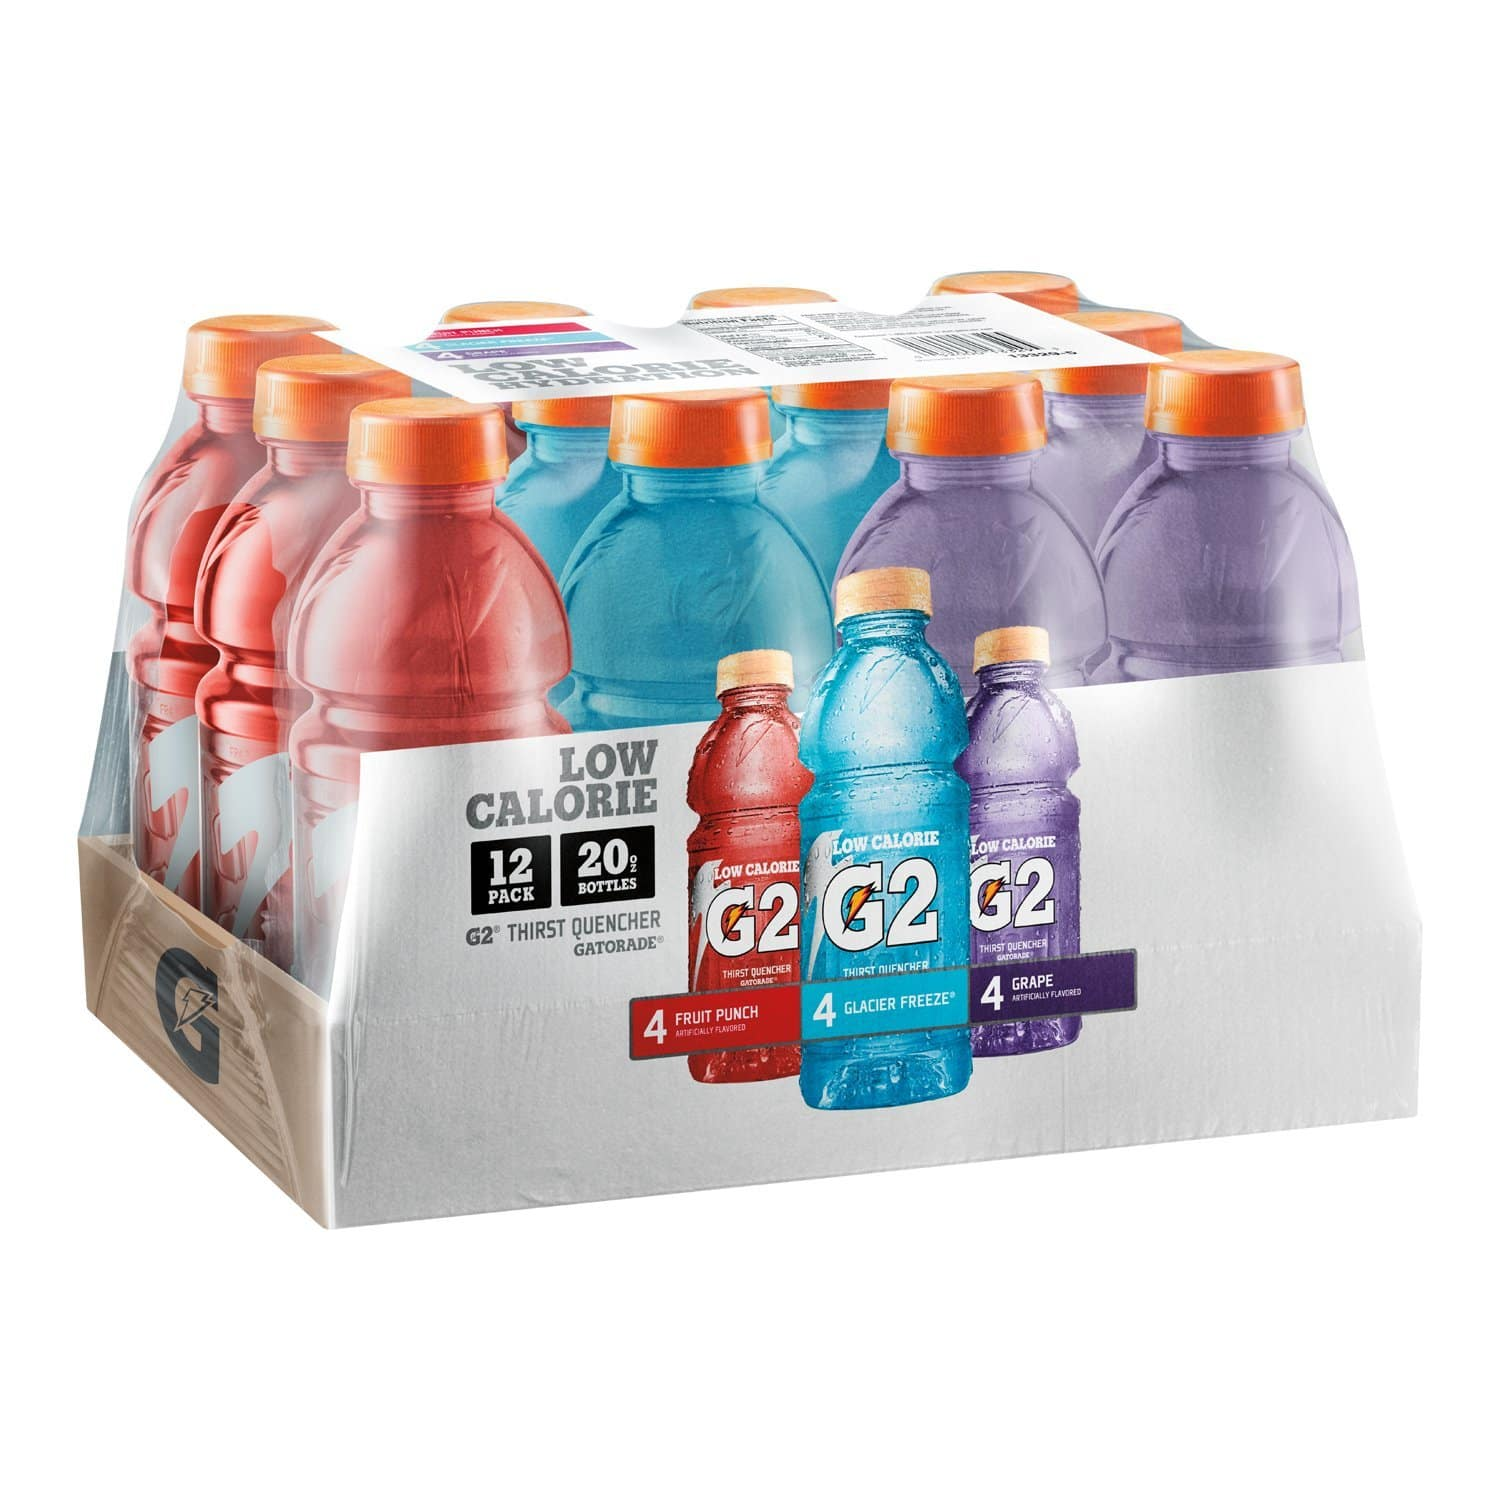 24-Pack 20oz. Gatorade G2 Thirst Quencher (variety pack)  $13.20 + Free S/H